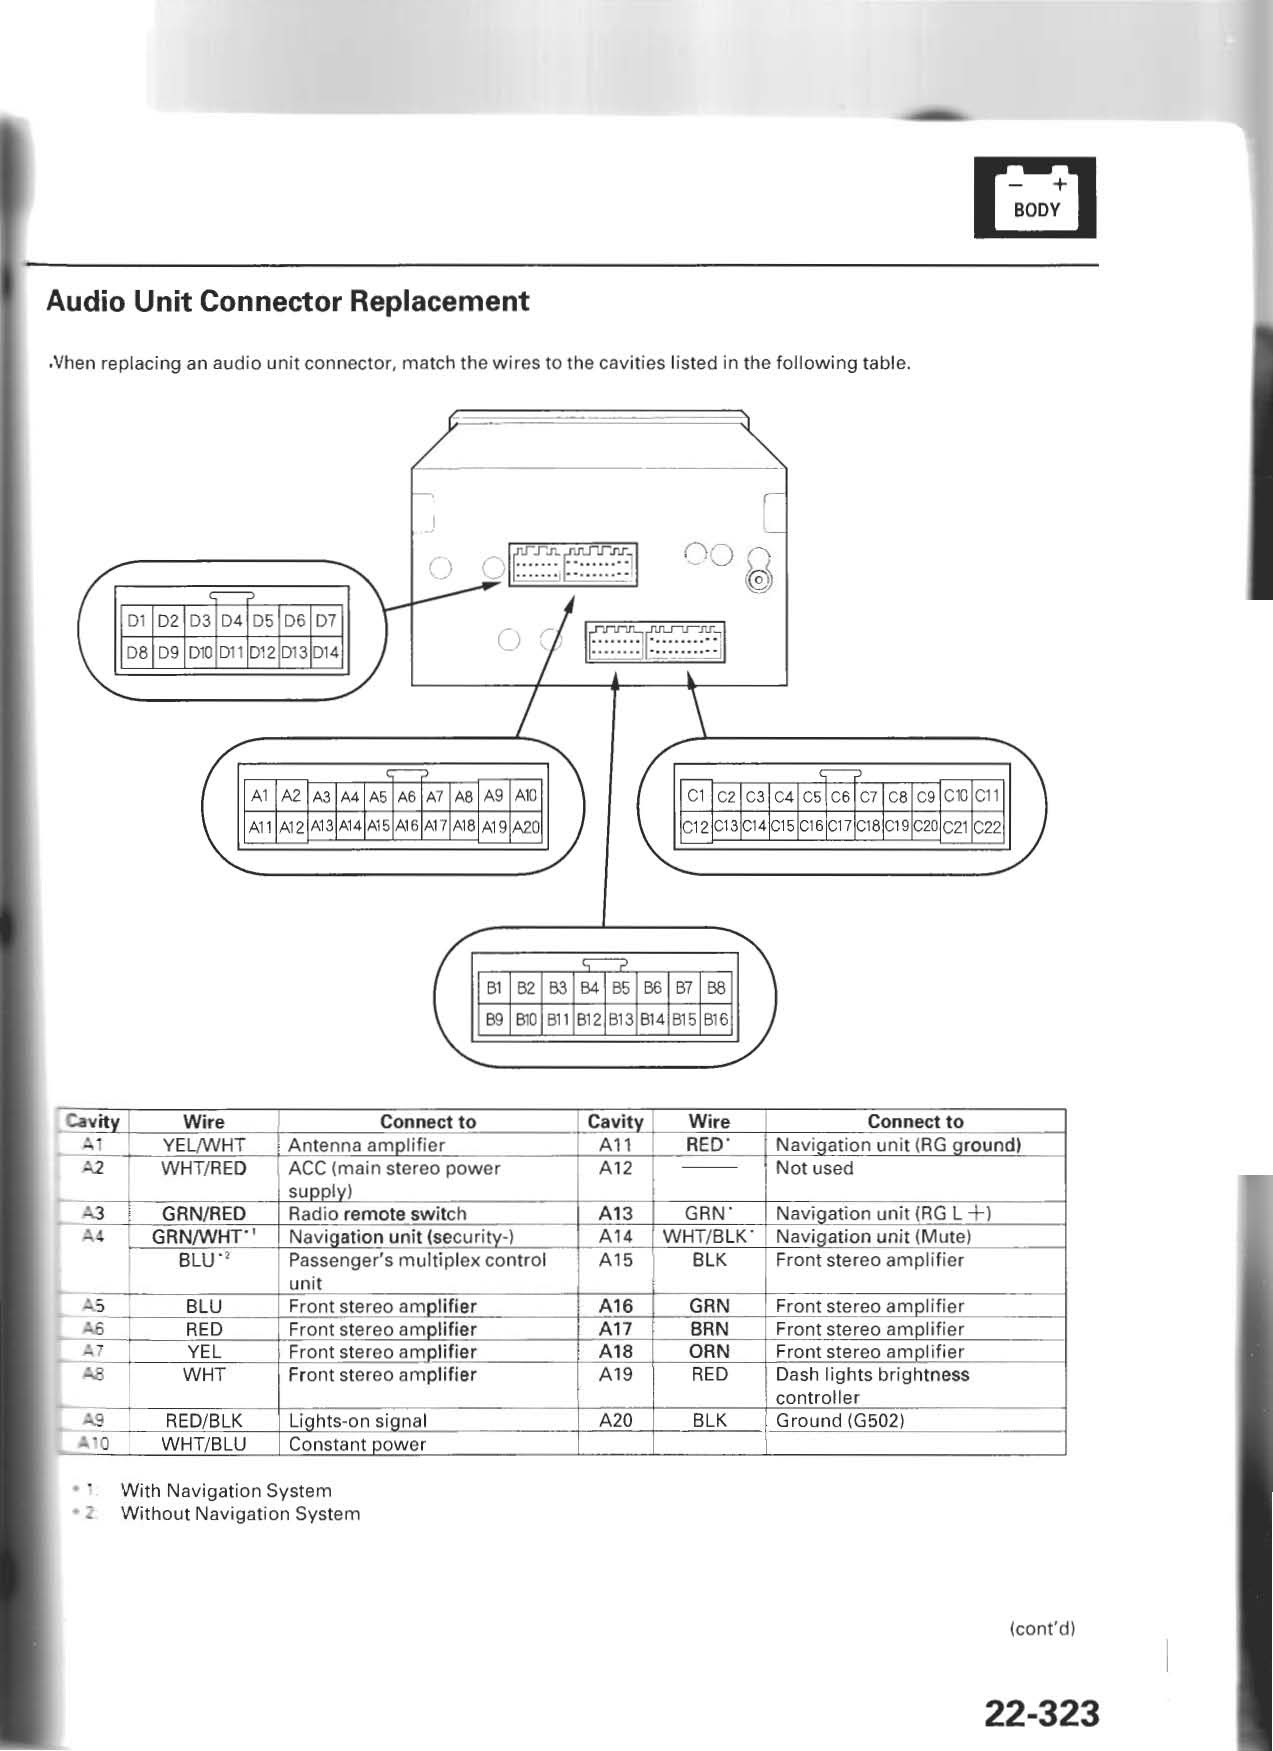 DIAGRAM] 2012 Acura Mdx Wiring Harness Diagram FULL Version HD Quality Harness  Diagram - M40SCHEMATIC505.CONCESSIONARIABELOGISENIGALLIA.ITconcessionariabelogisenigallia.it